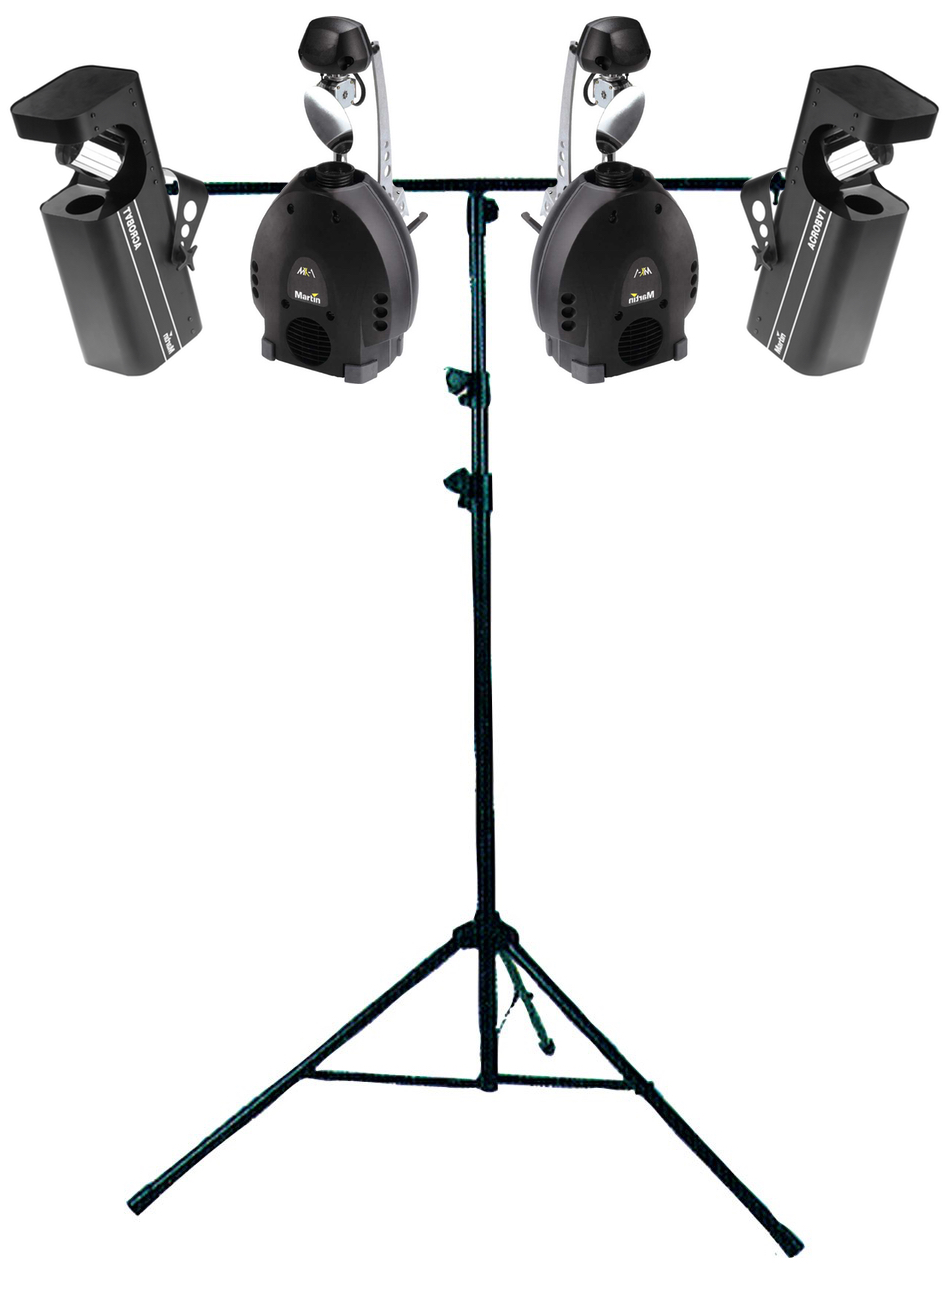 2X MX1 2X ACROBAT ON A T-STAND $150